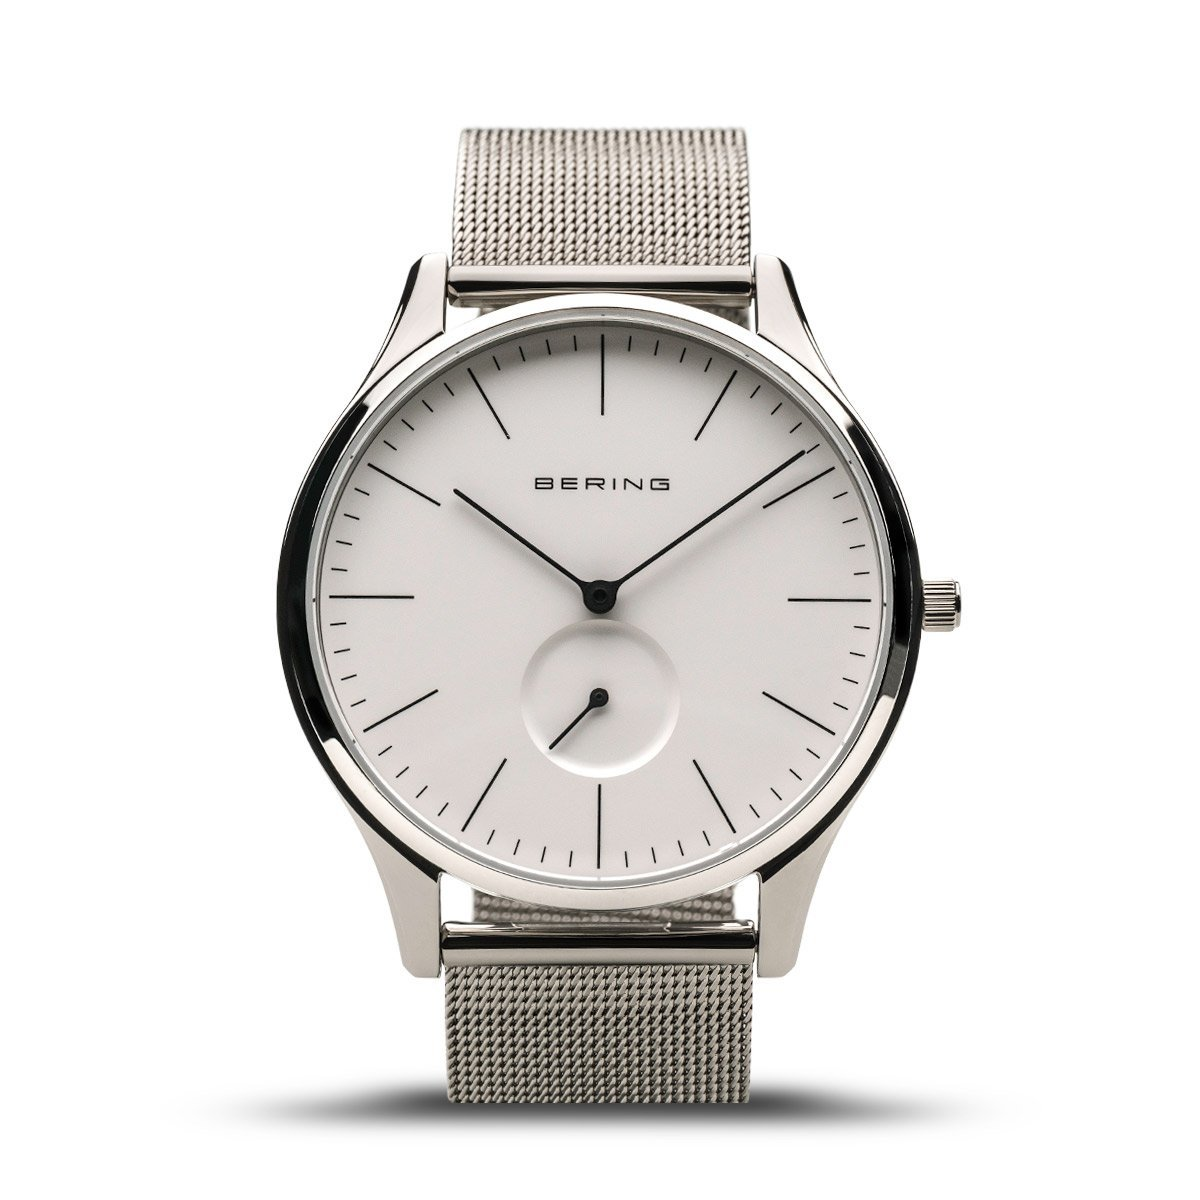 Bering Men's Watch with white dial and mesh strap